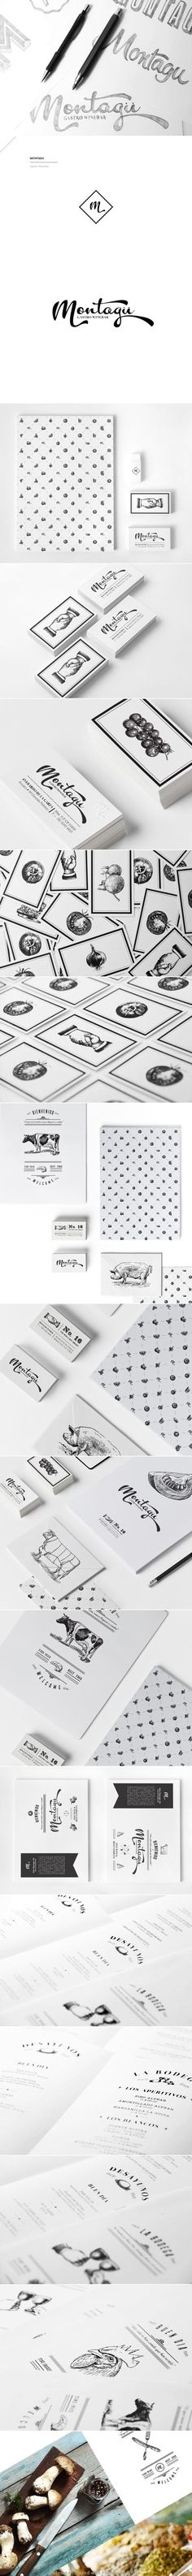 Beautiful Branding for Spanish-Mexican Restaurant Montagu